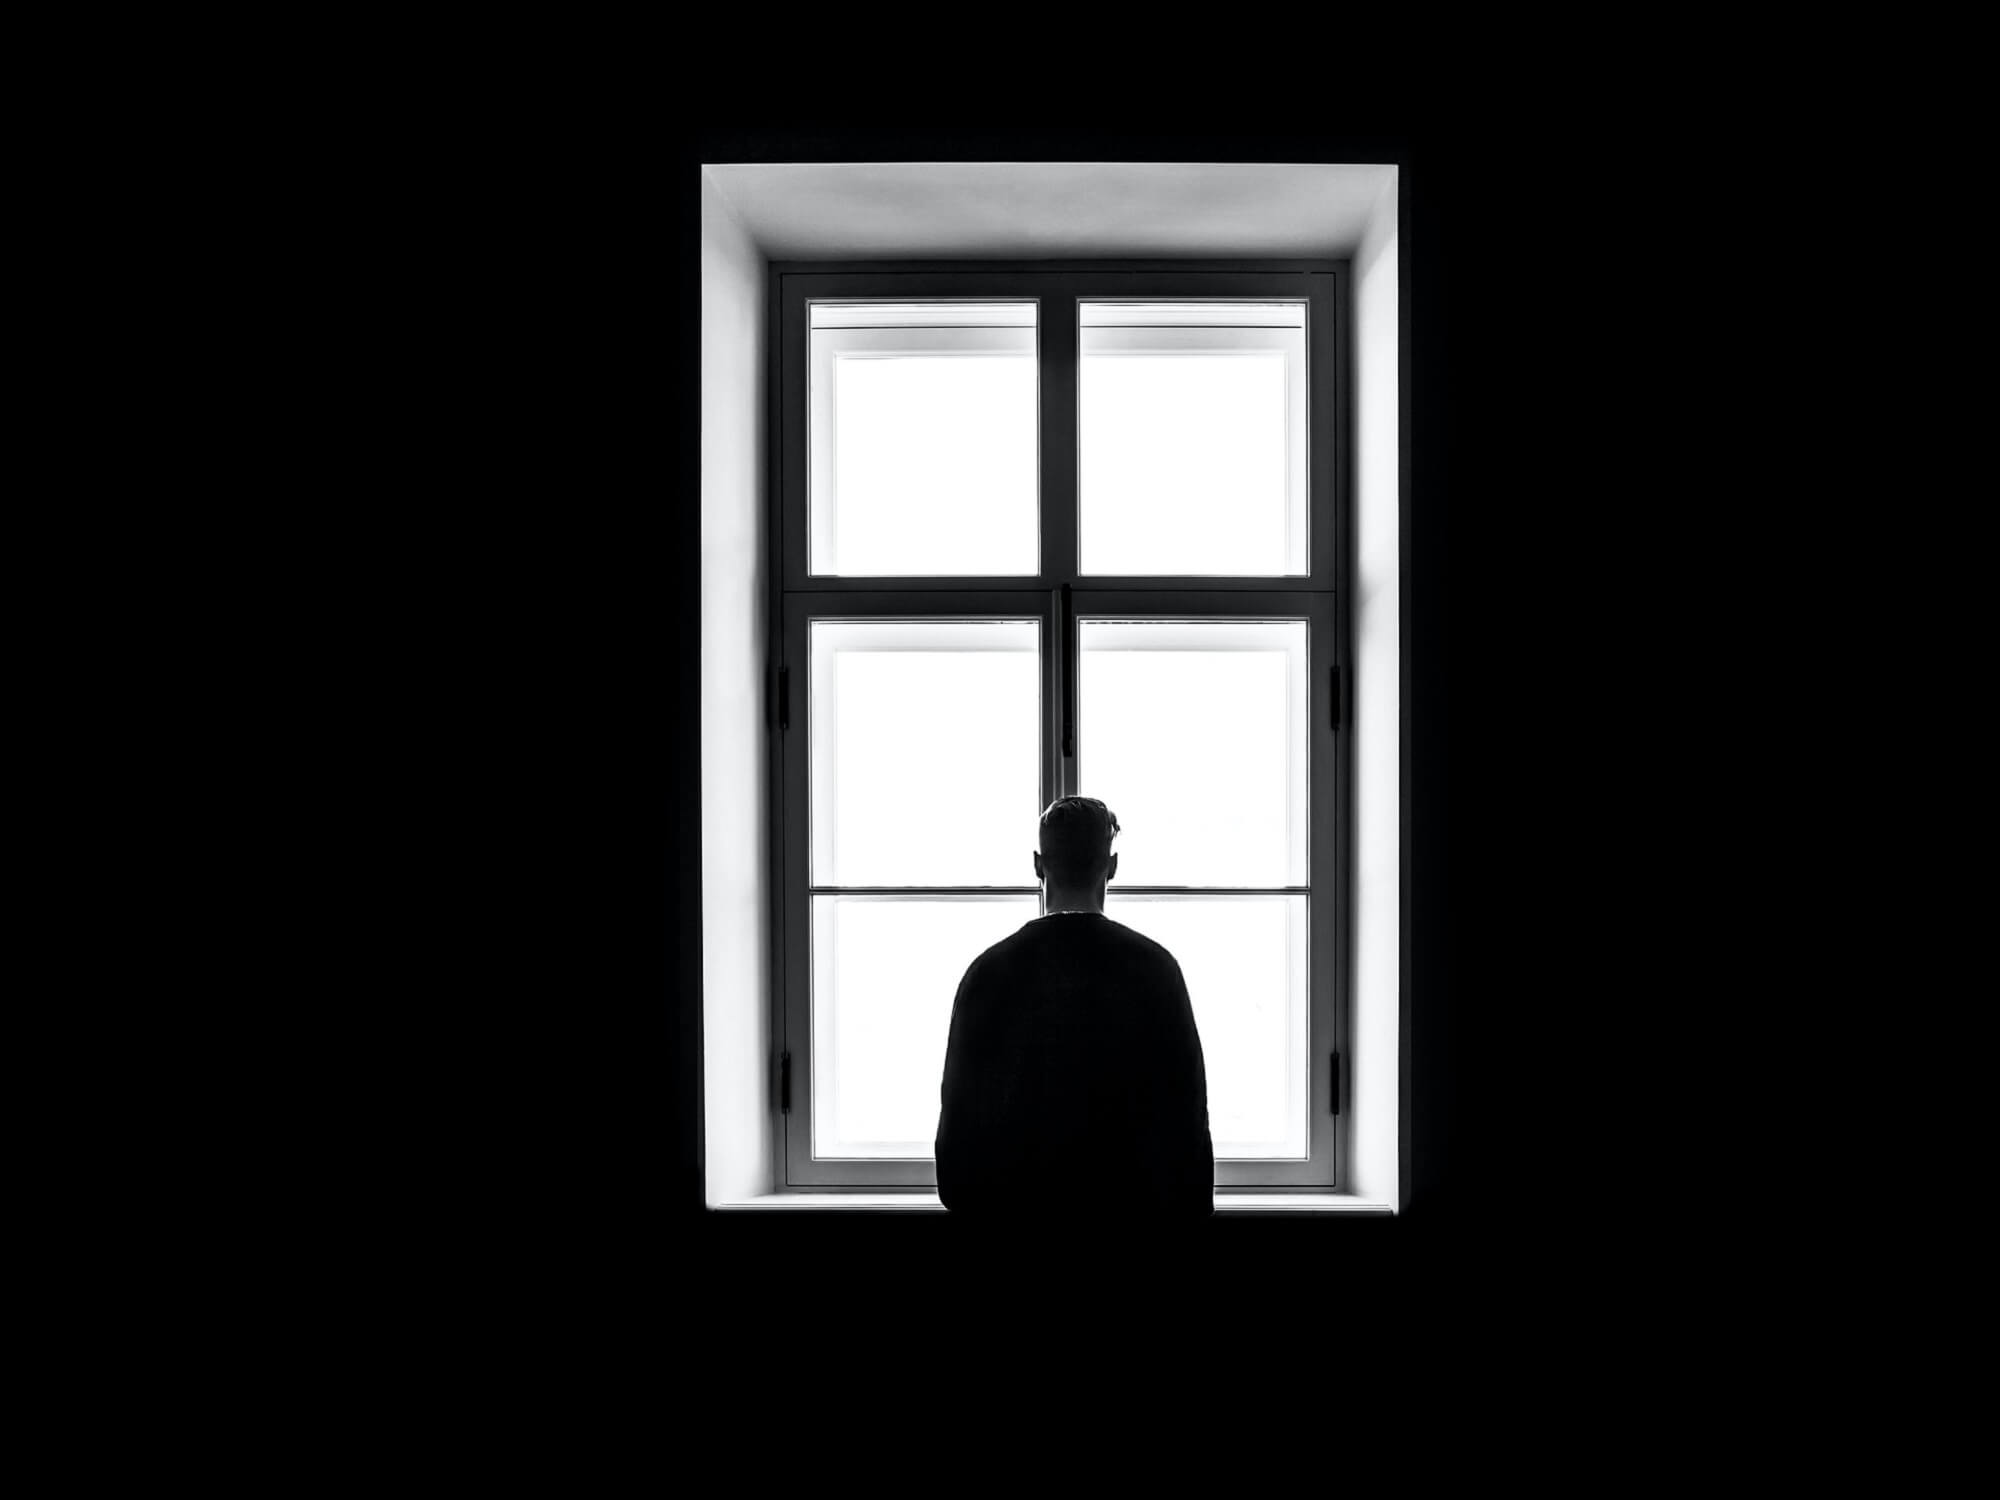 Silhouette of a man staring out of a window